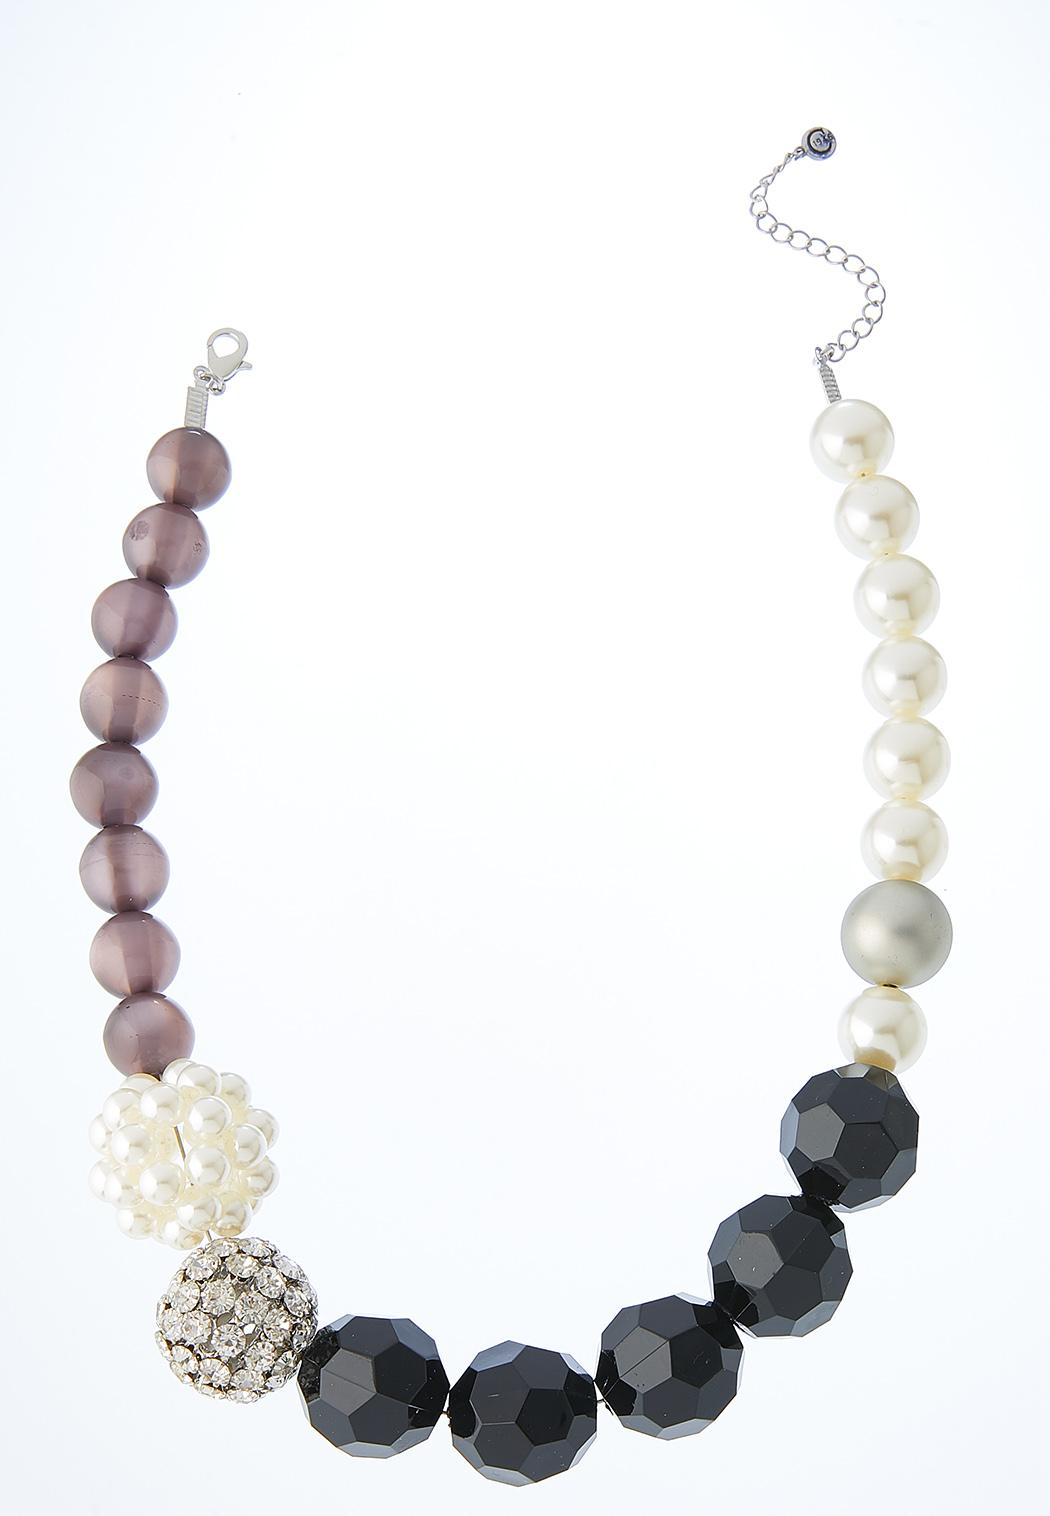 Pearl And Pave Mixed Bead Necklace